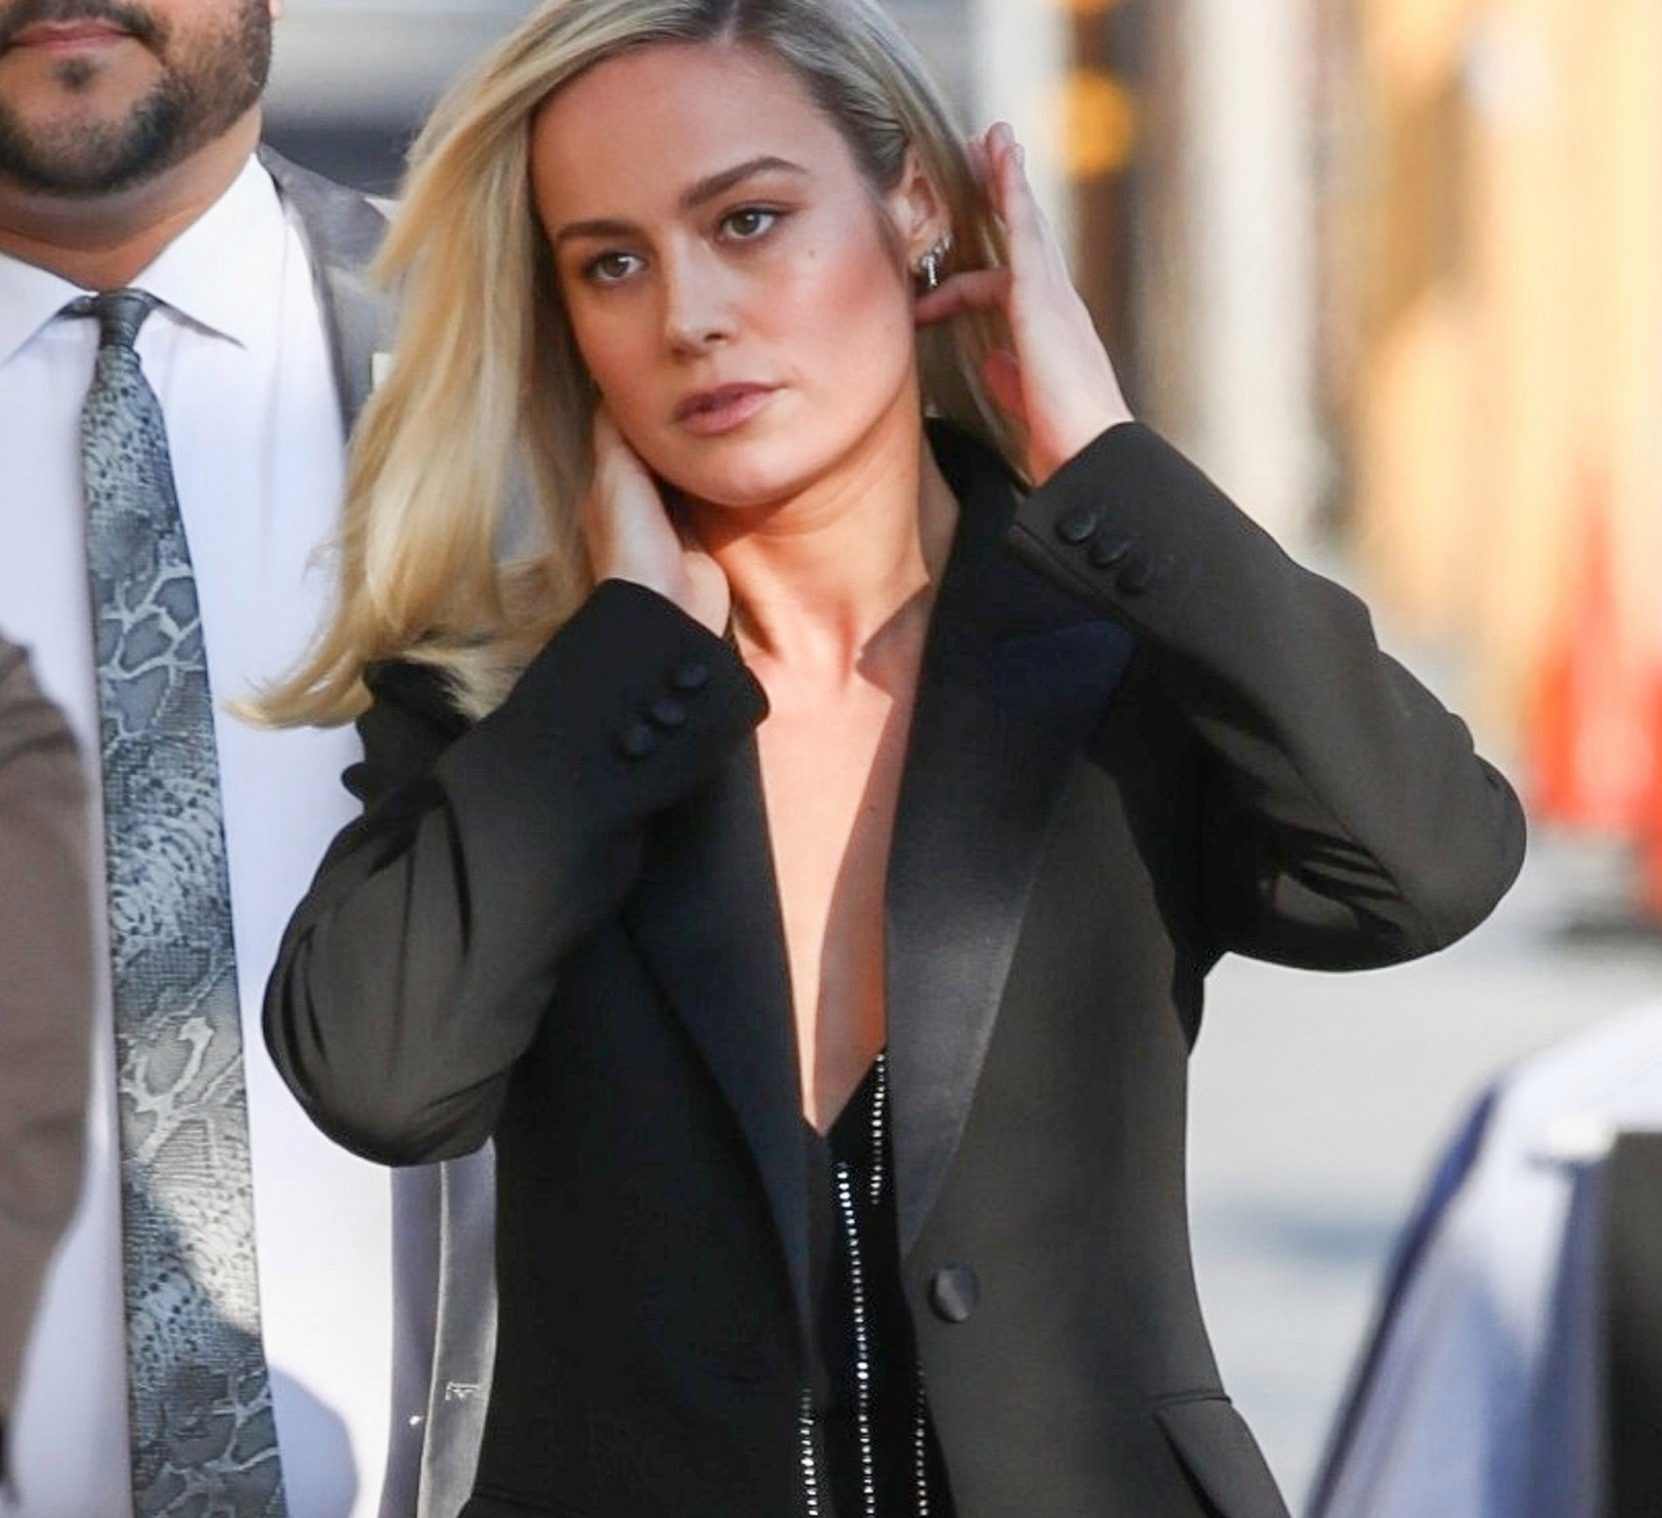 Hollywood, CA - Captain Marvel's Brie Larson arrives at the El Capitan Entertainment Centre in Hollywood for an appearance on Jimmy Kimmel Live! Pictured: Brie Larson BACKGRID USA 4 MARCH 2019 BYLINE MUST READ: NEMO / BACKGRID USA: +1 310 798 9111 / usasales@backgrid.com UK: +44 208 344 2007 / uksales@backgrid.com *UK Clients - Pictures Containing Children Please Pixelate Face Prior To Publication*